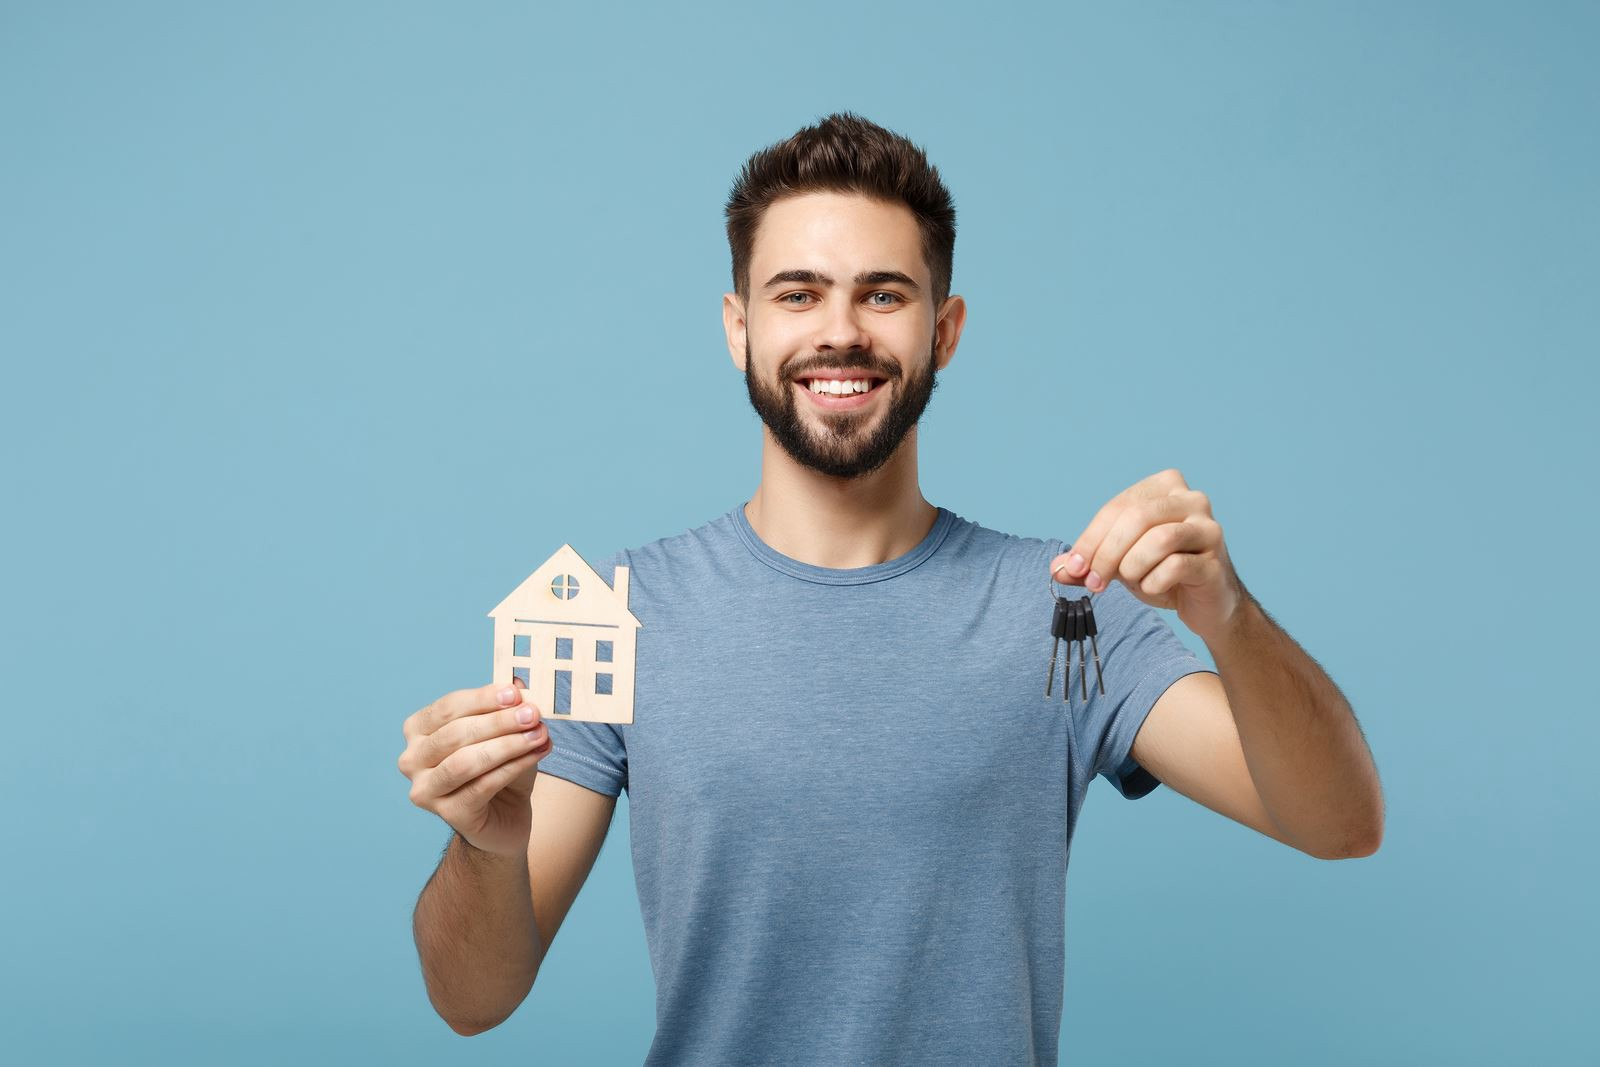 Buying Property for Airbnb Is a Smart Real Estate Investment